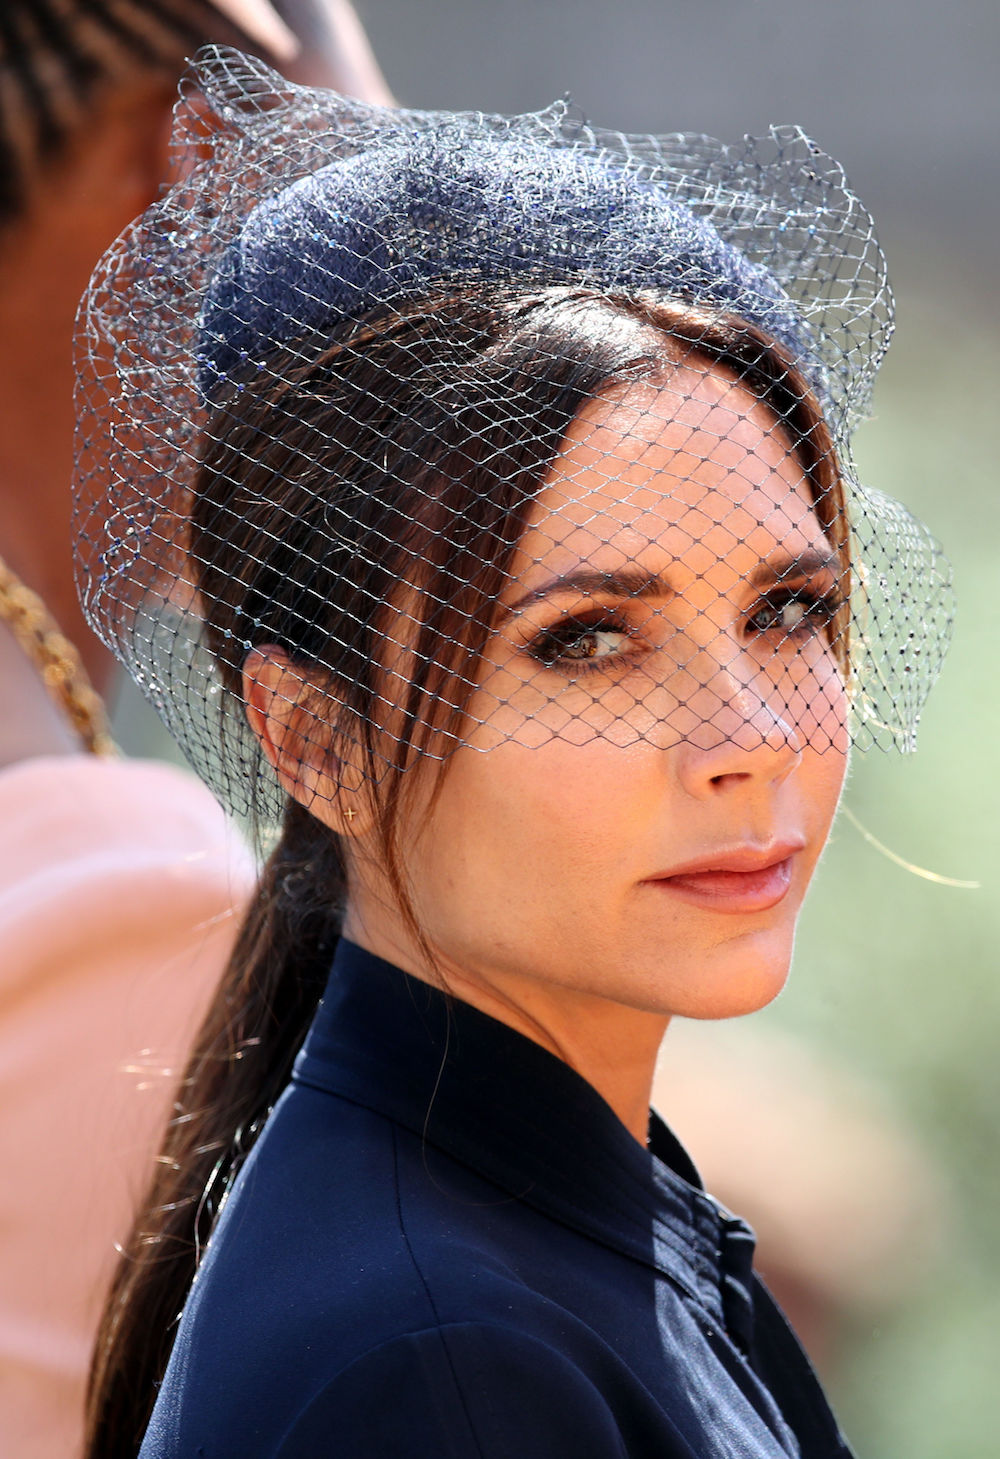 David and Victoria Beckham Attend the Royal Wedding of Prince Harry to Meghan Markle